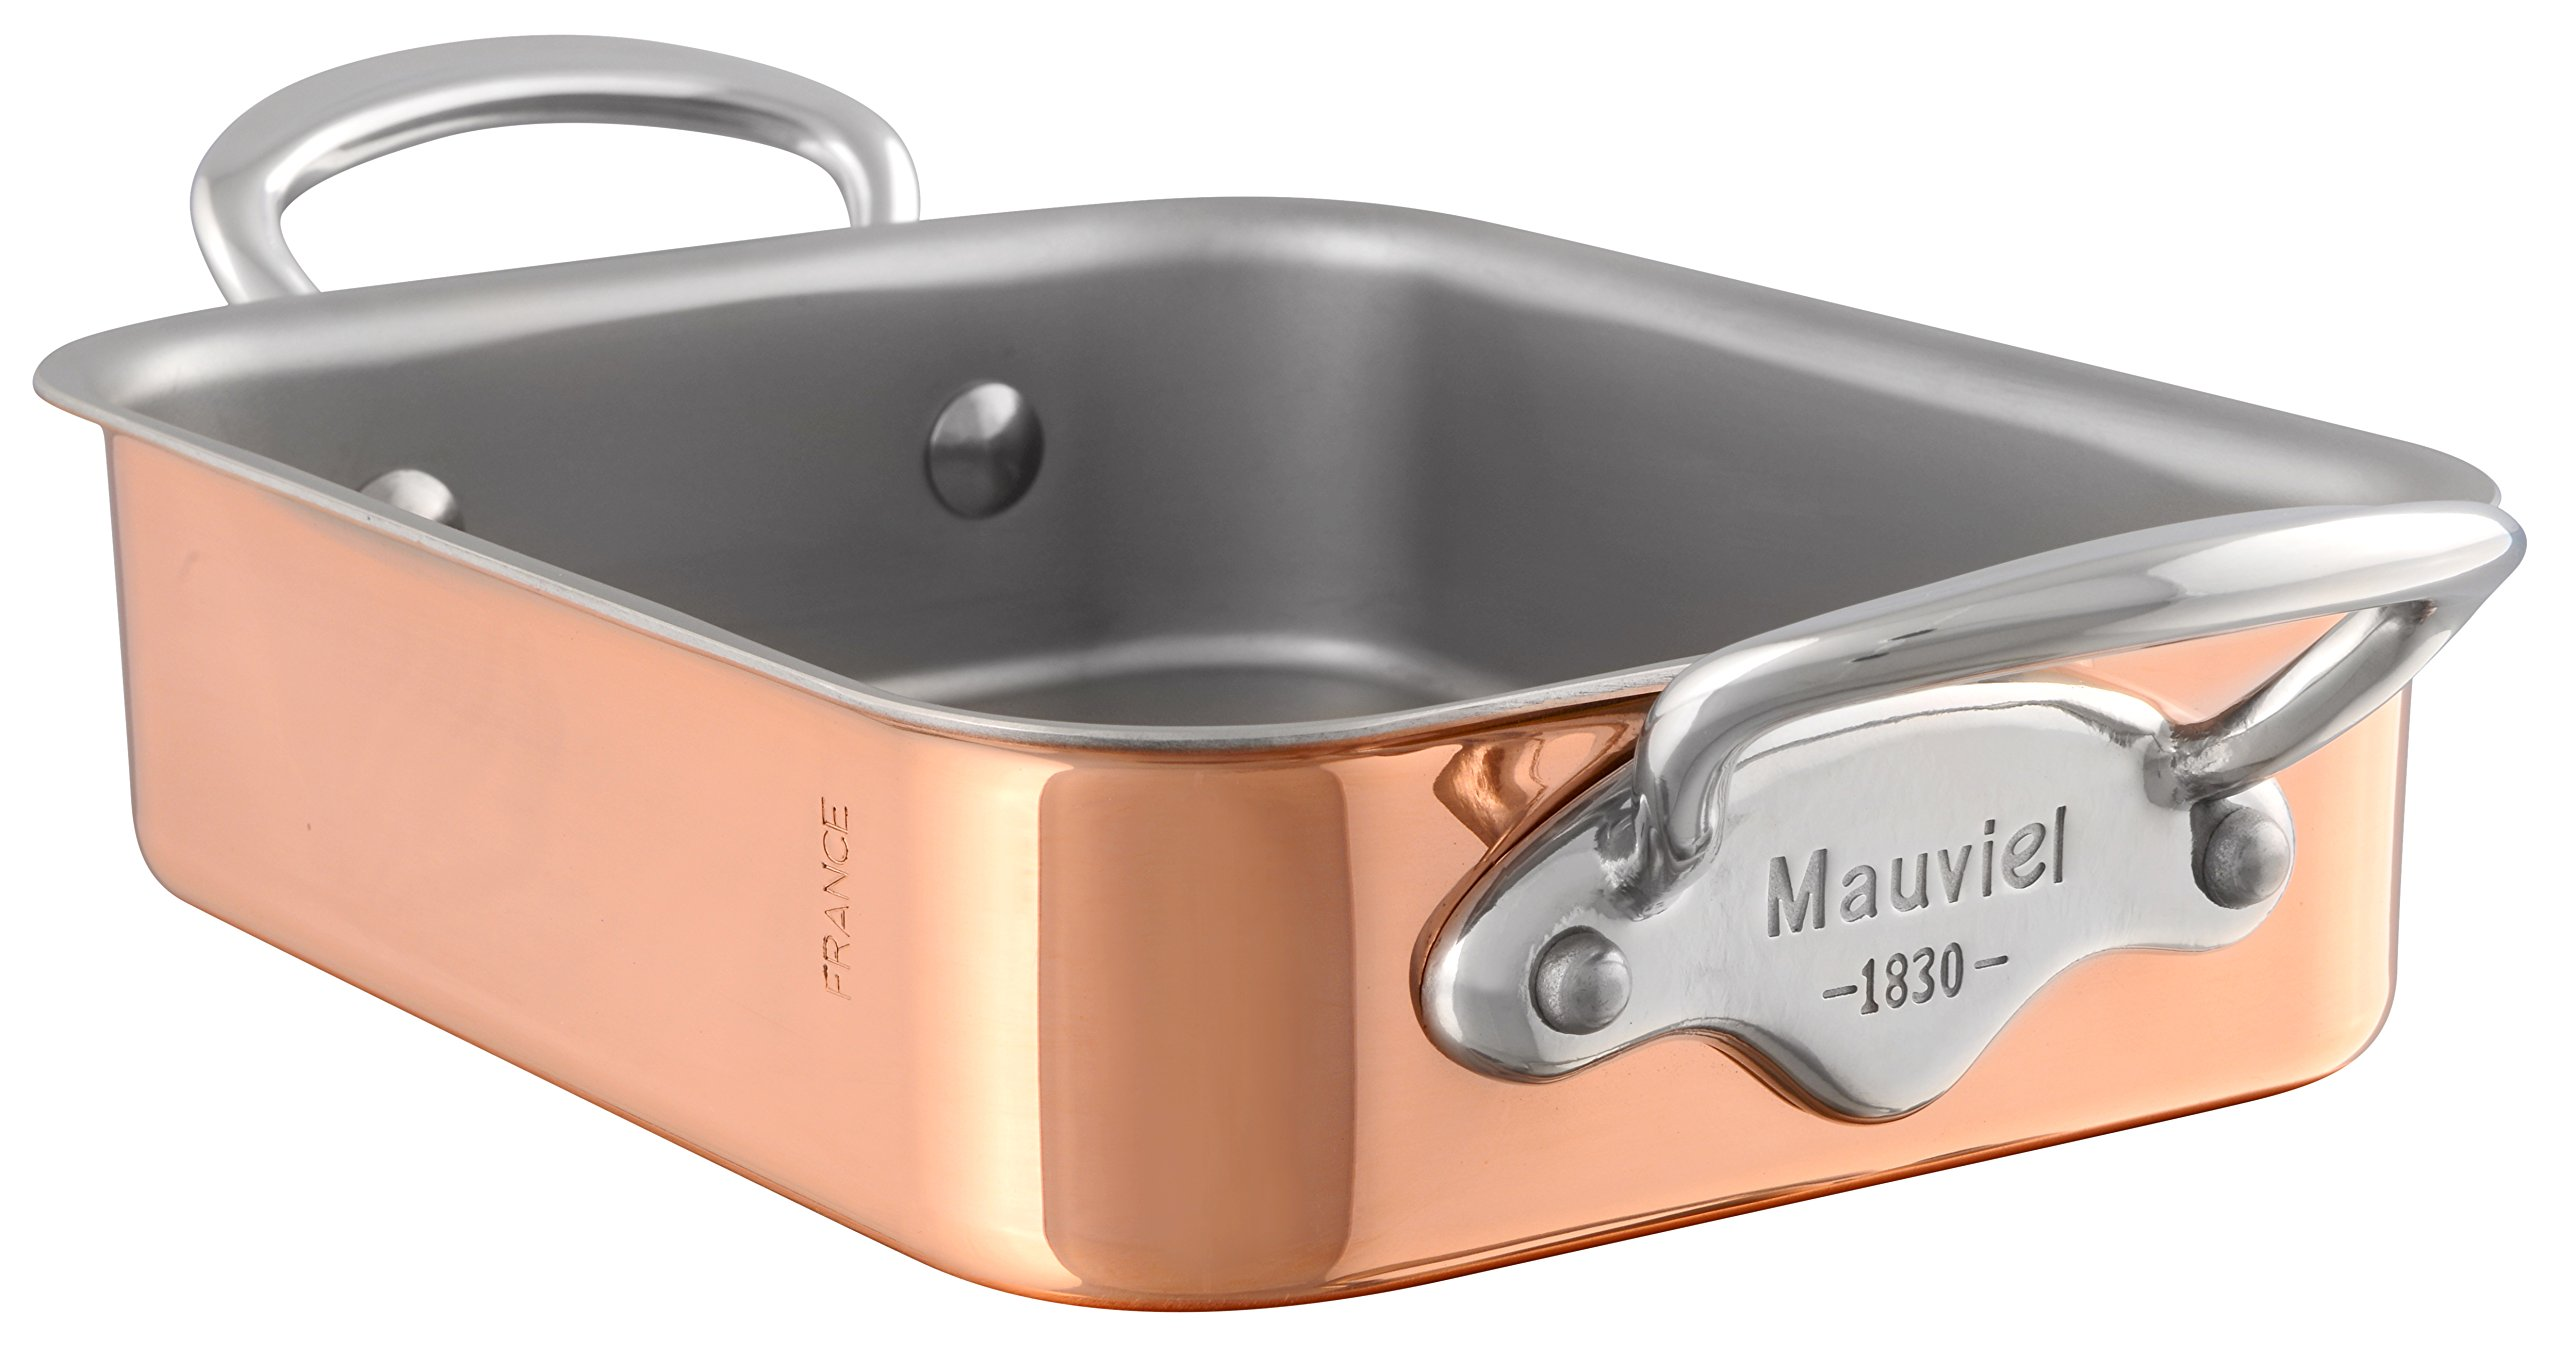 Mauviel M'Mini Roaster with Stainless Steel Handles - Copper - 7.1 x 3.9''